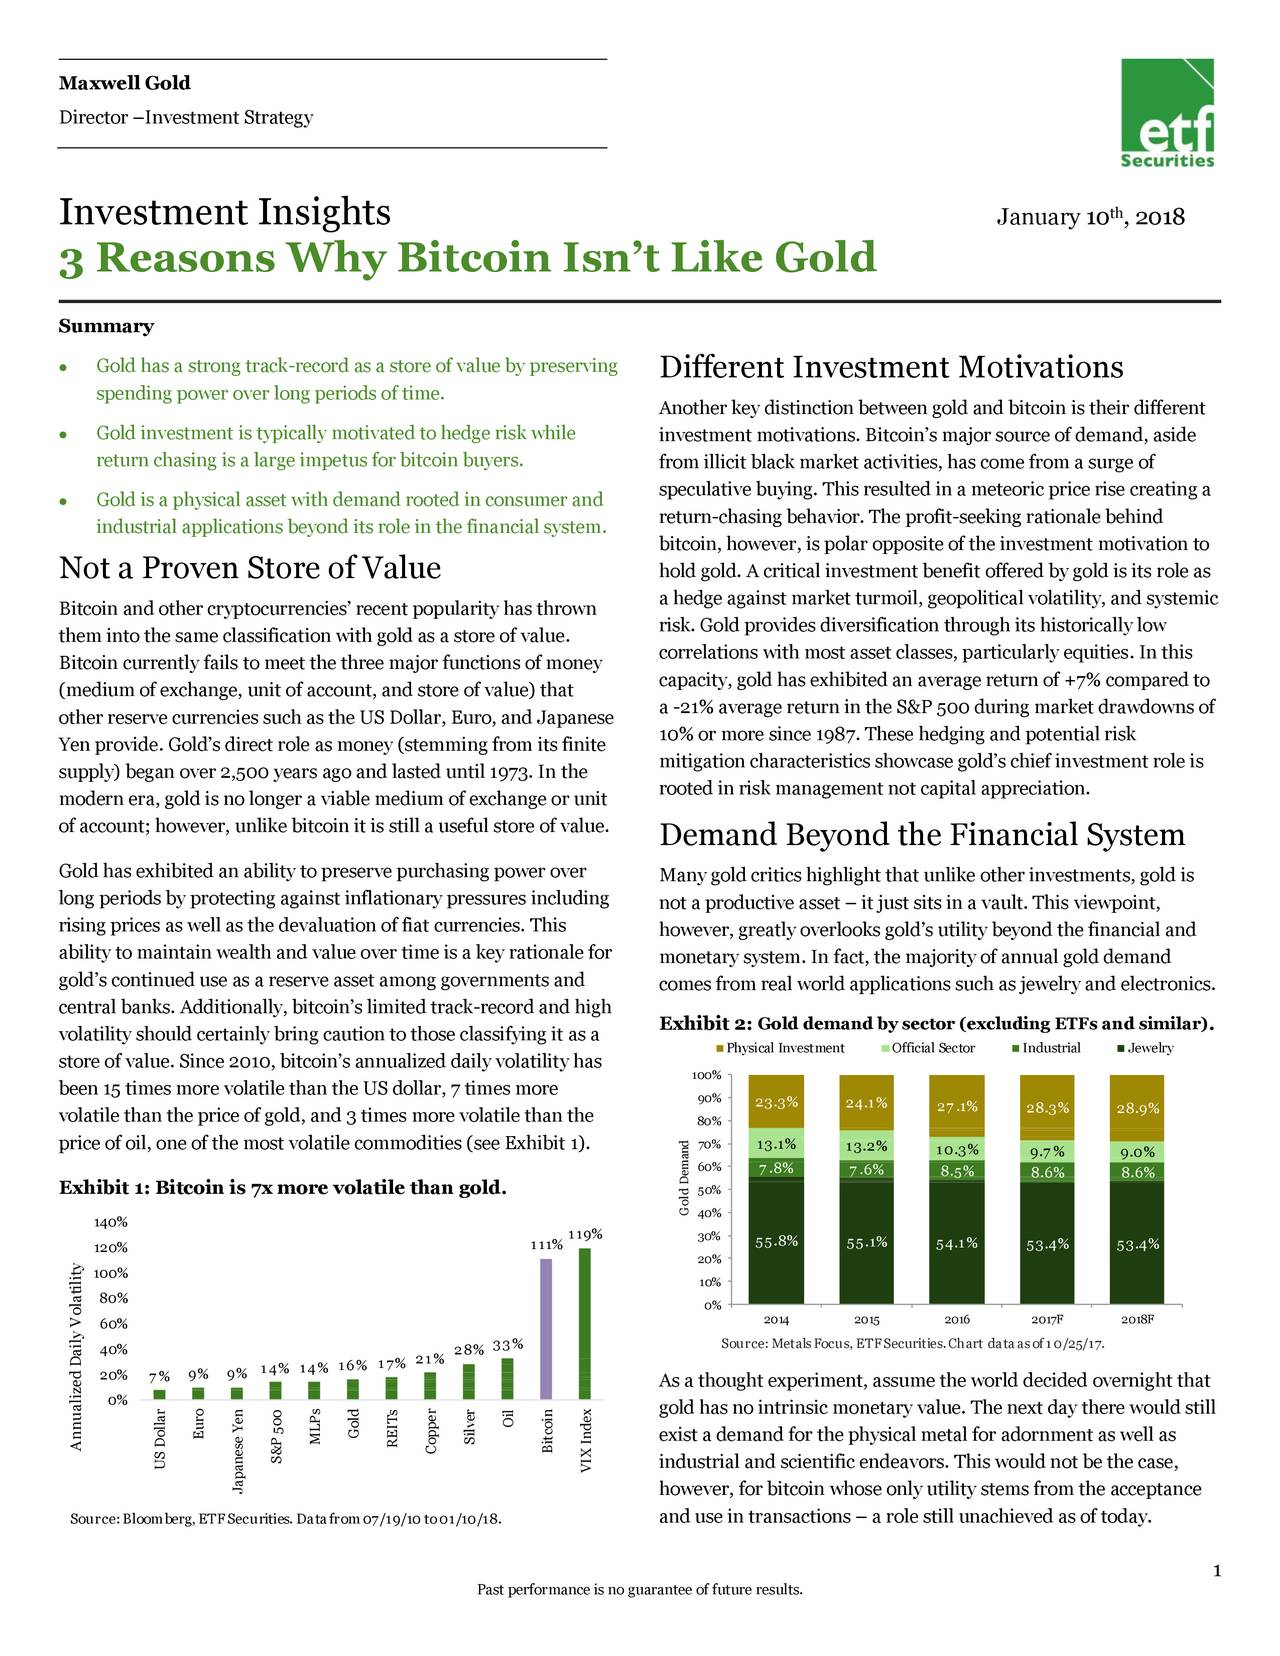 Director –Investment Strategy Investment Insights January 10 , 2018 3 Reasons Why Bitcoin Isn't Like Gold Summary  Gold has a strong track-record as a store of value by preserving Different Investment Motivations spending power over long periods of time. Another key distinction between gold and bitcoin is their different  Gold investment is typically motivated to hedge risk while investment motivations. Bitcoin's major source of demand, aside return chasing is a large impetus for bitcoin buyers. from illicit black market activities, has come from a surge of speculative buying. This resulted in a meteoric price rise creating a  Gold is a physical asset with demand rooted in consumer and industrial applications beyond its role in the financial system. return-chasing behavior. The profit-seeking rationale behind bitcoin, however, is polar opposite of the investment motivation to Not a Proven Store of Value hold gold. A critical investment benefit offered by gold is its role as a hedge against market turmoil, geopolitical volatility, and systemic Bitcoin and other cryptocurrencies' recent popularity has thrown them into the same classification with gold as a store of value. risk. Gold provides diversification through its historically low correlations with most asset classes, particularly equities. In this Bitcoin currently fails to meet the three major functions of money capacity, gold has exhibited an average return of +7% compared to (medium of exchange, unit of account, and store of value) that other reserve currencies such as the US Dollar, Euro, and Japanese a -21% average return in the S&P 500 during market drawdowns of 10% or more since 1987. These hedging and potential risk Yen provide. Gold's direct role as money (stemming from its finite mitigation characteristics showcase gold's chief investment role is supply) began over 2,500 years ago and lasted until 1973. In the rooted in risk management not capital appreciation. modern era, gold is no longer a viable me